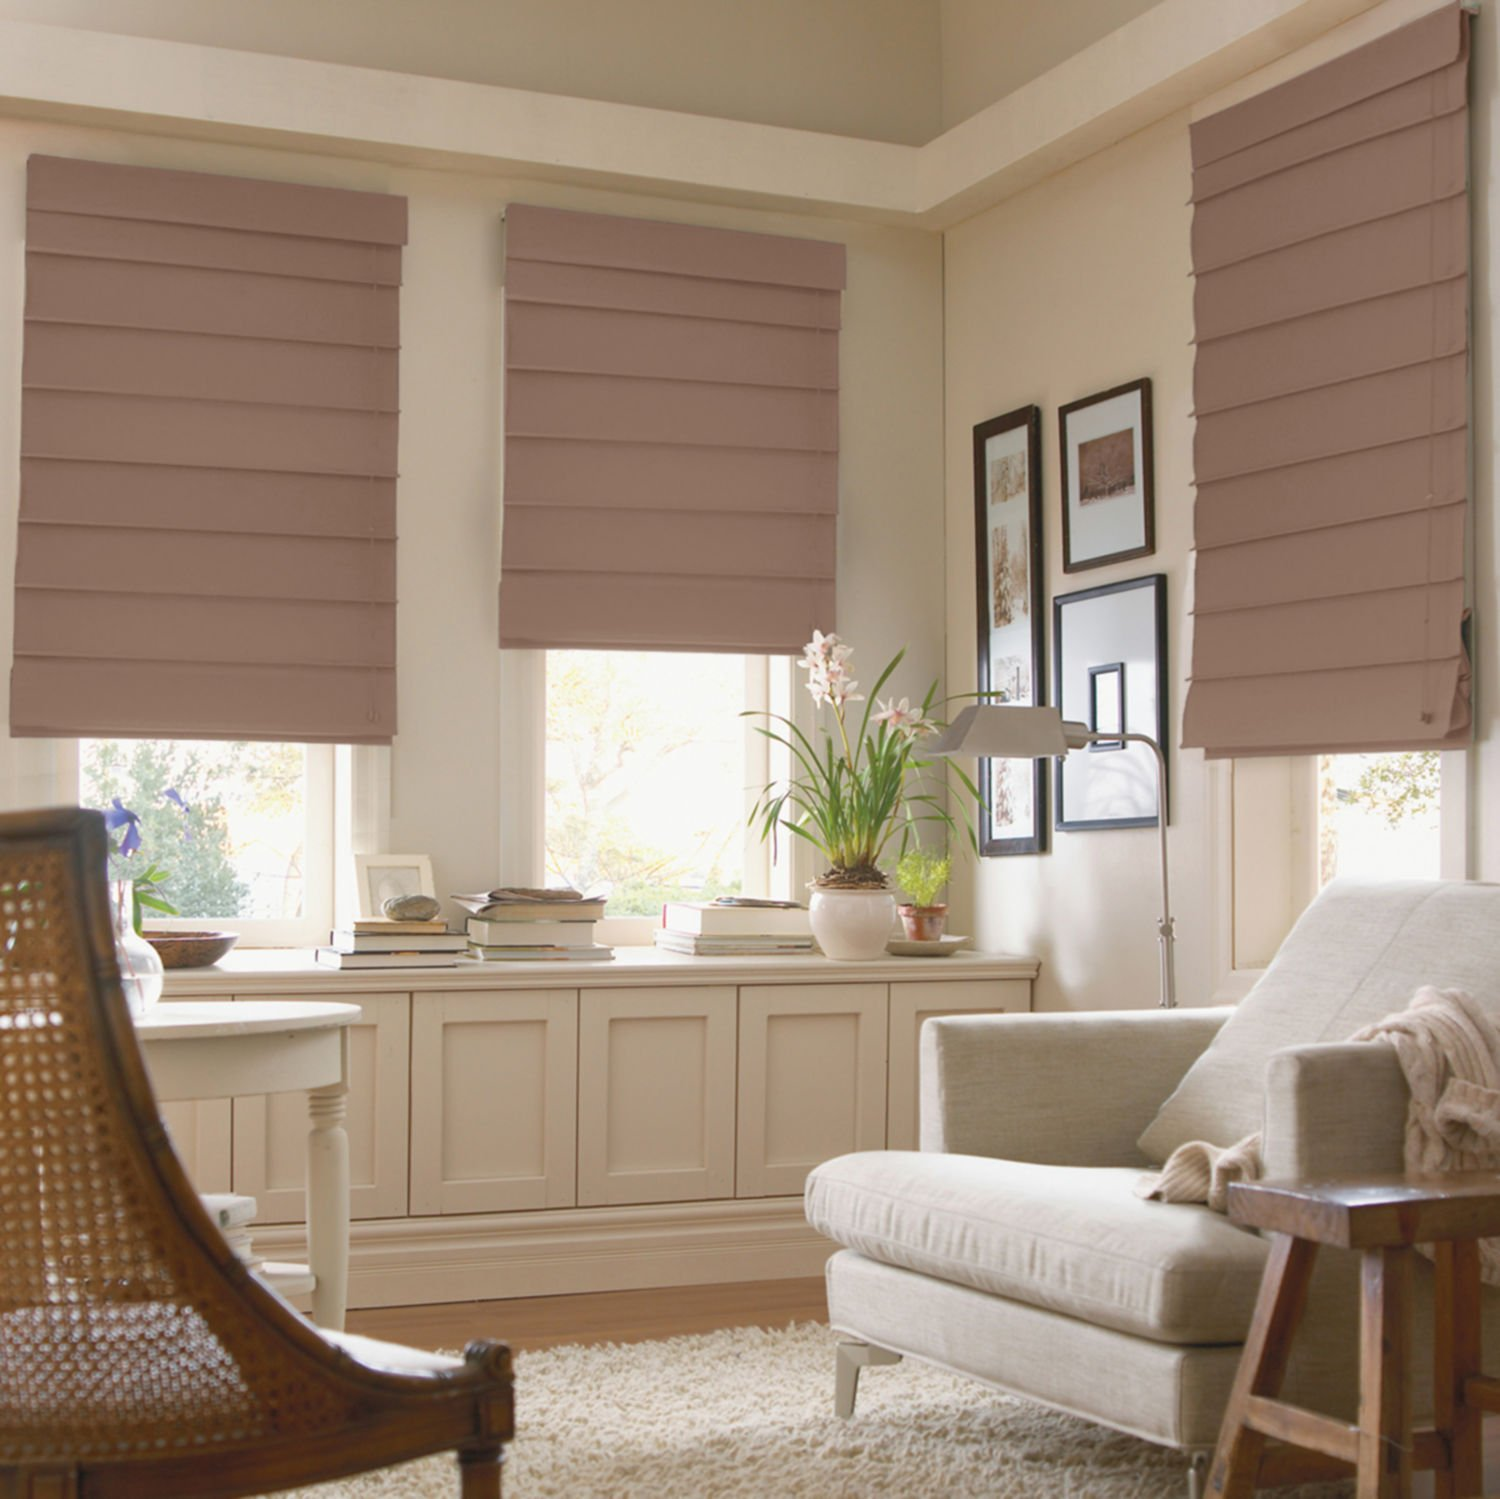 Inexpensive Patterned Roman Shades Awesome Decorating Ideas